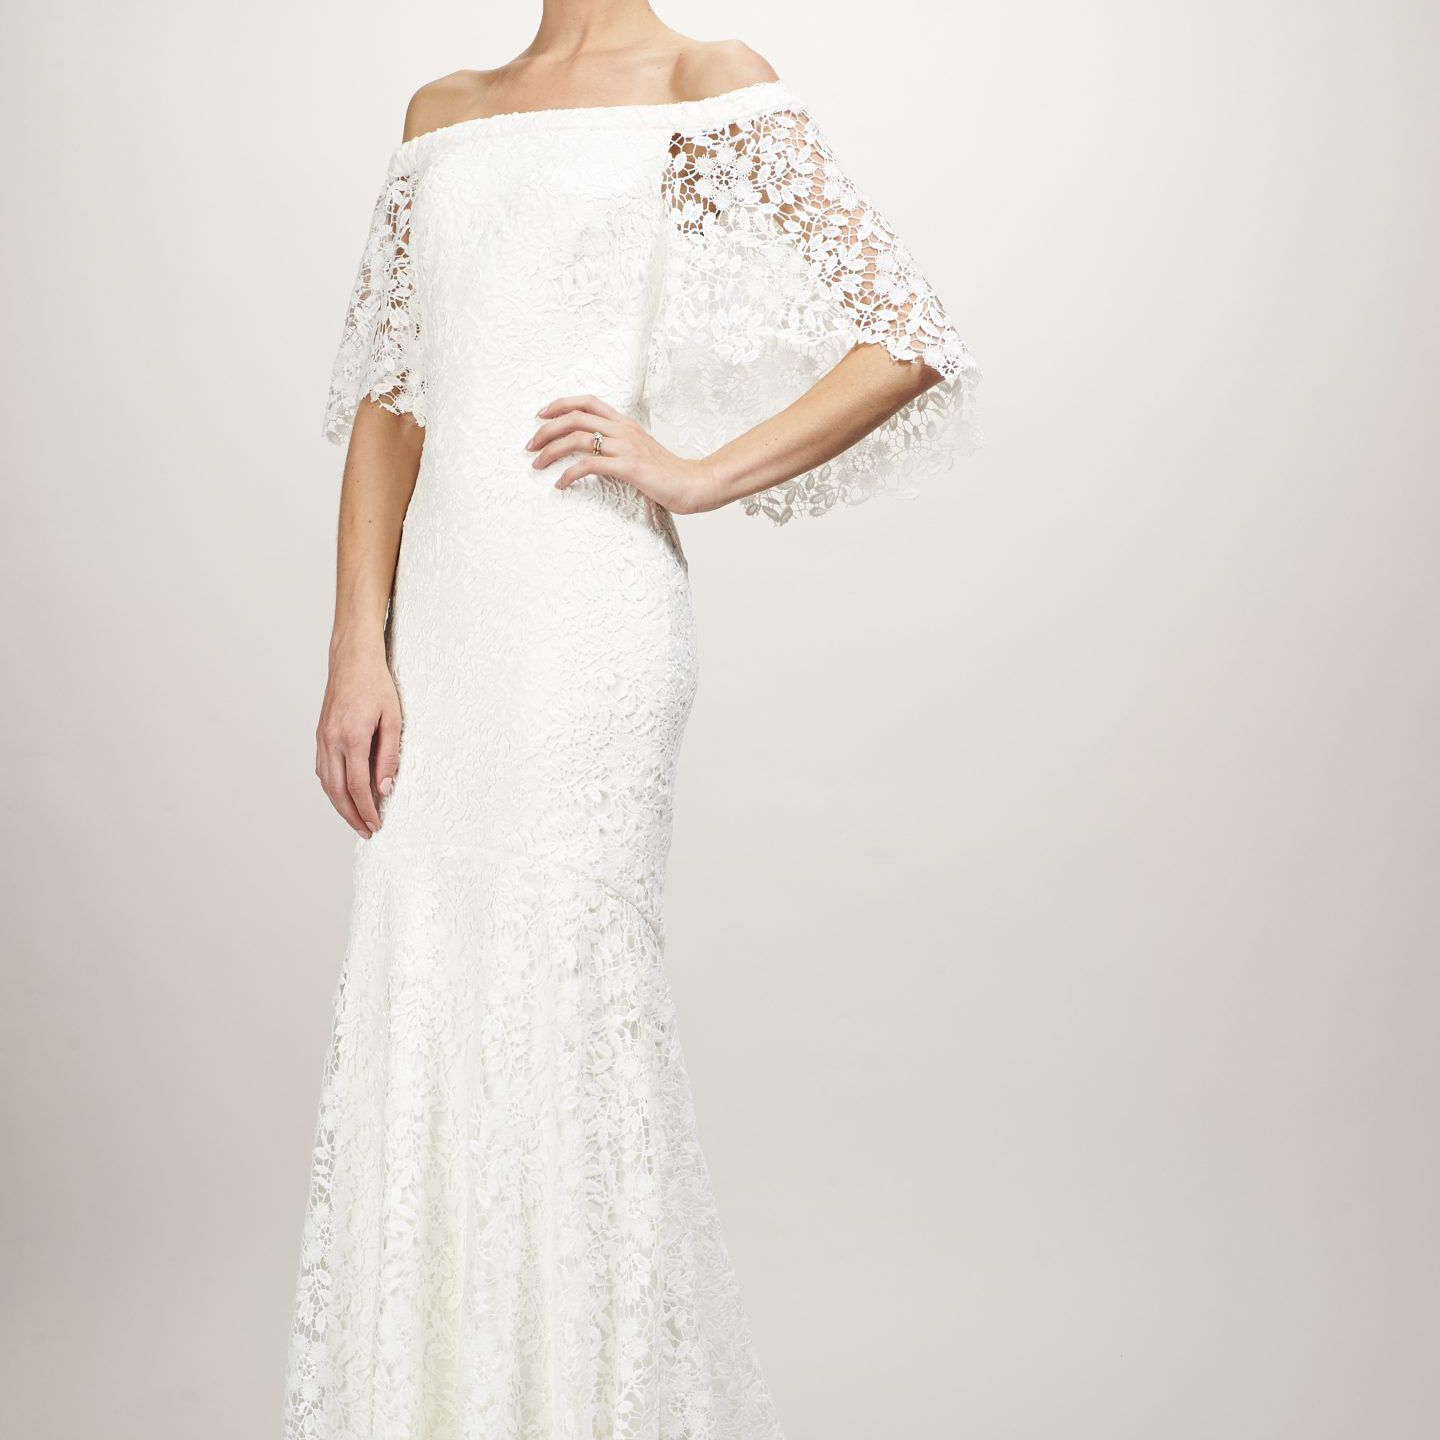 Model in lace off-the-shoulder gown with winged sleeves